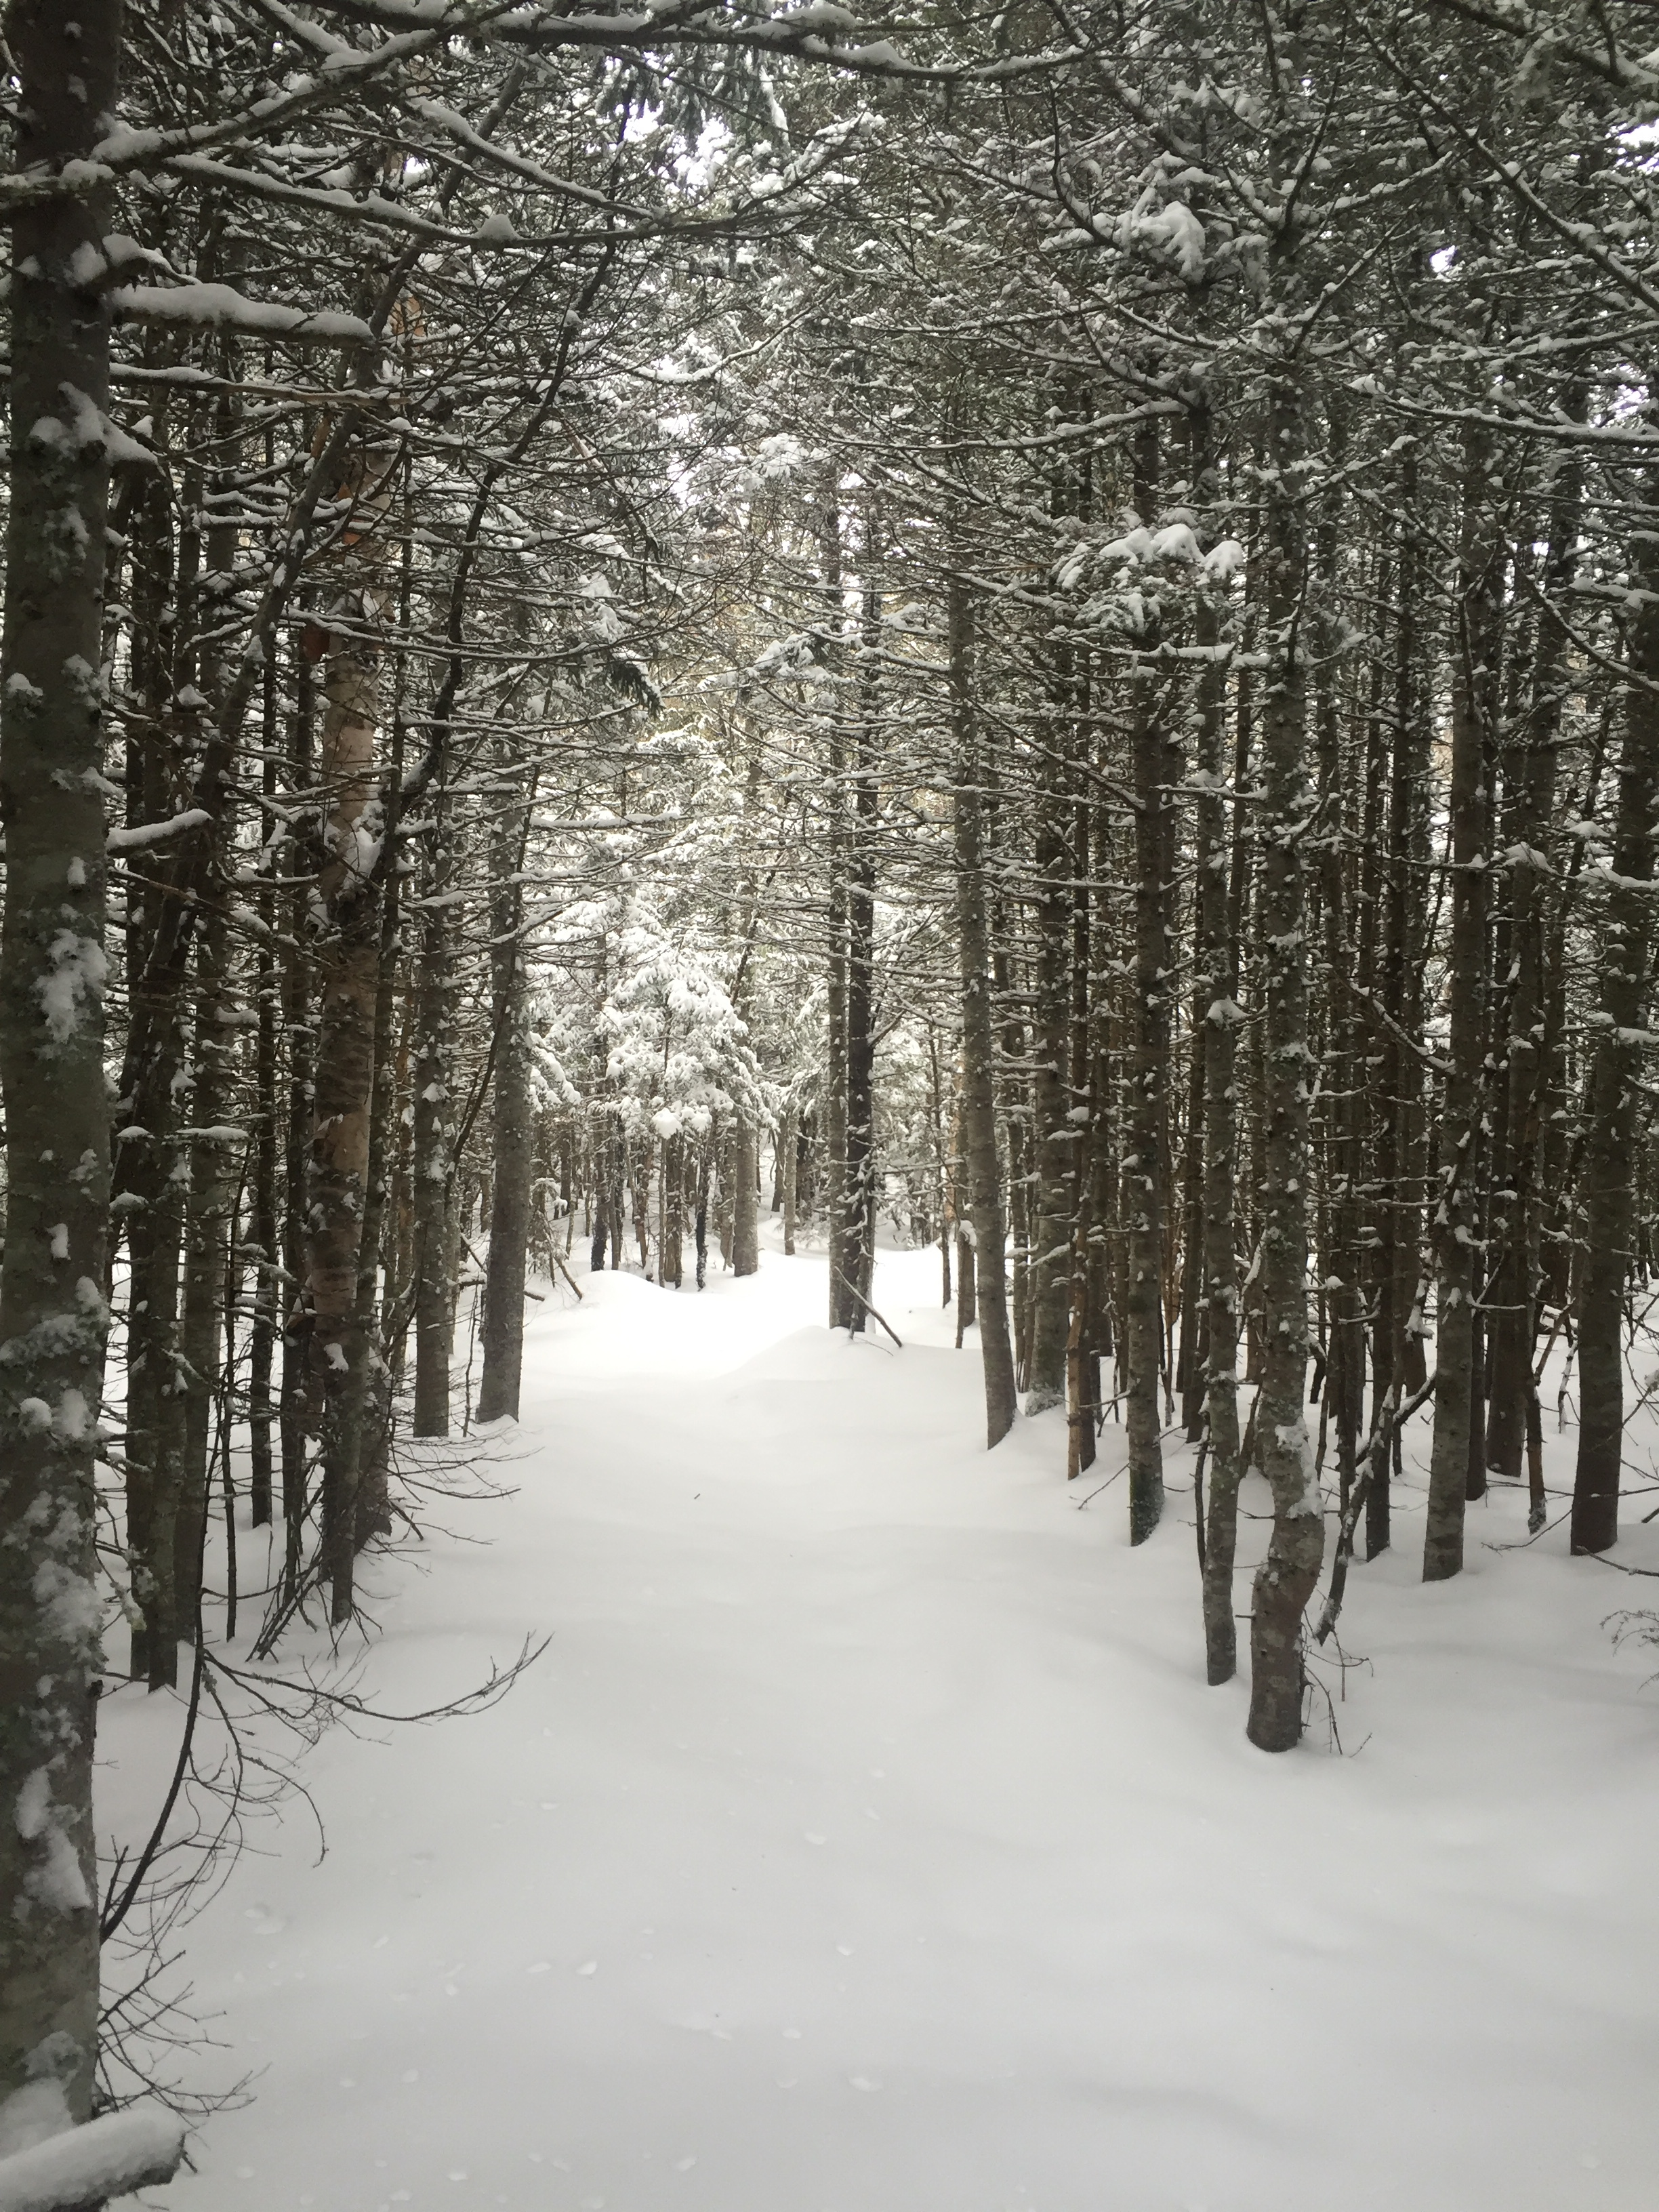 Love the wintery feel of breaking trail in the evergreen corridors.